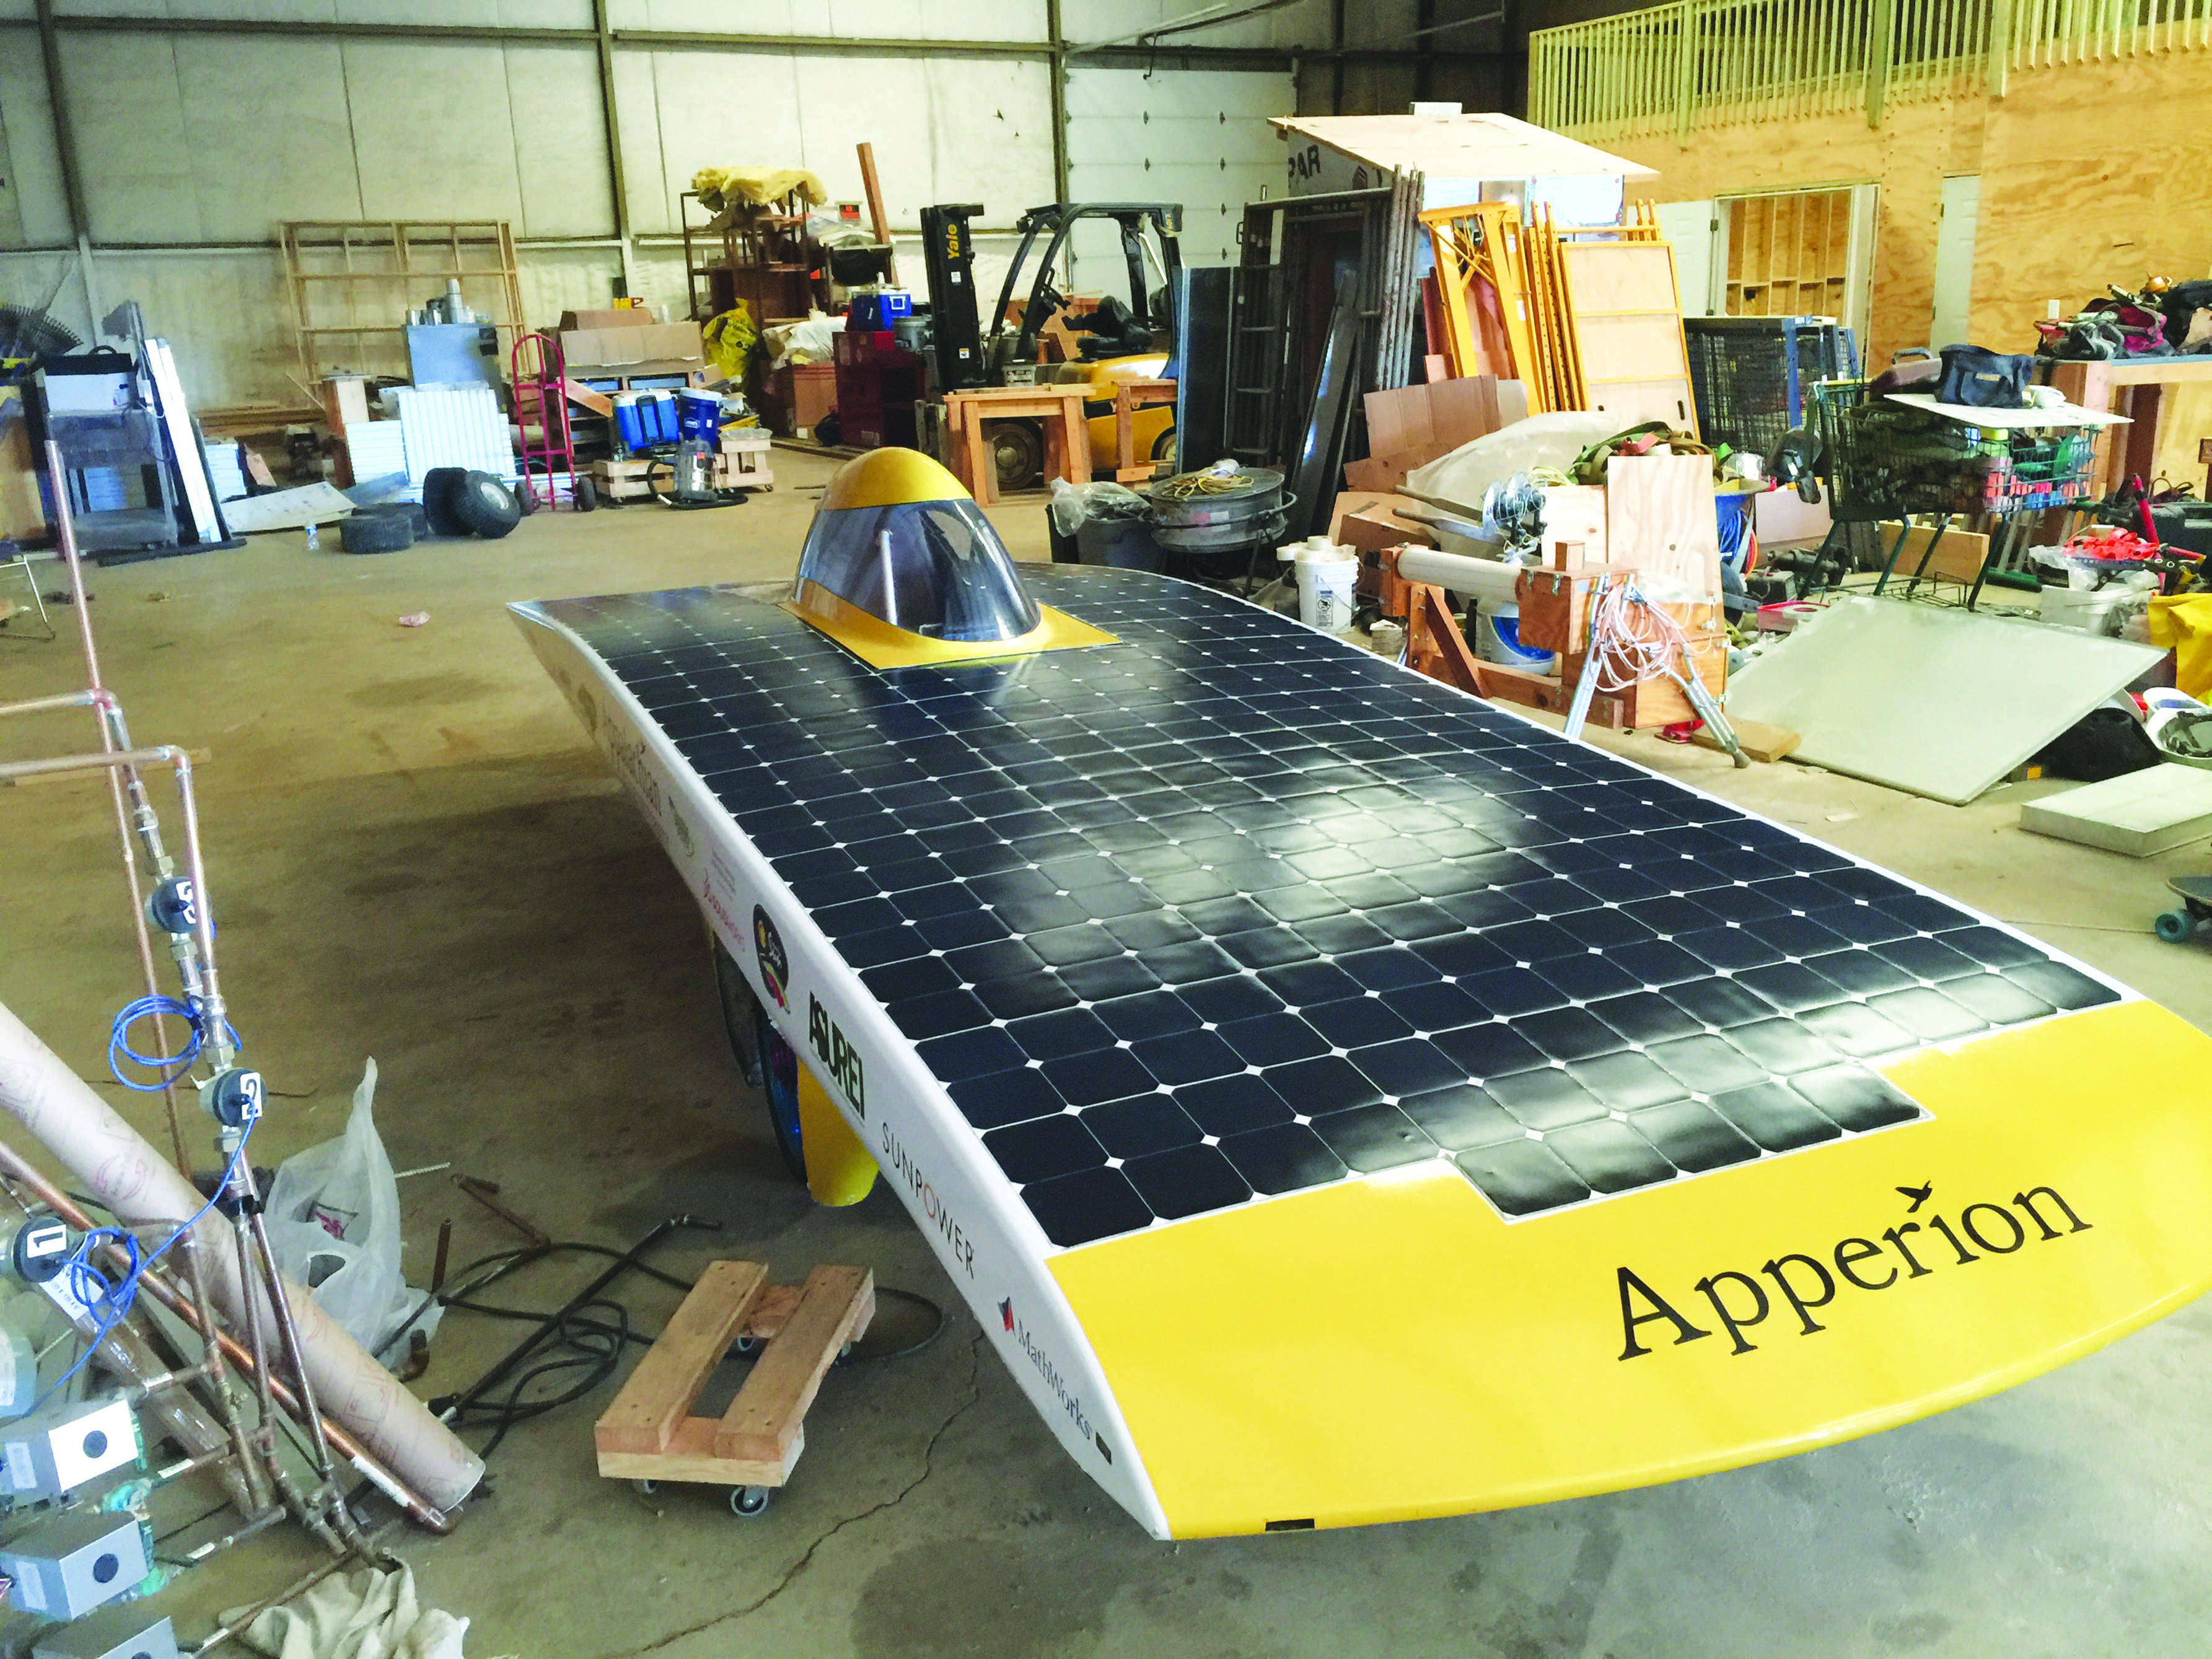 Show devotion to sustainability with solar car support